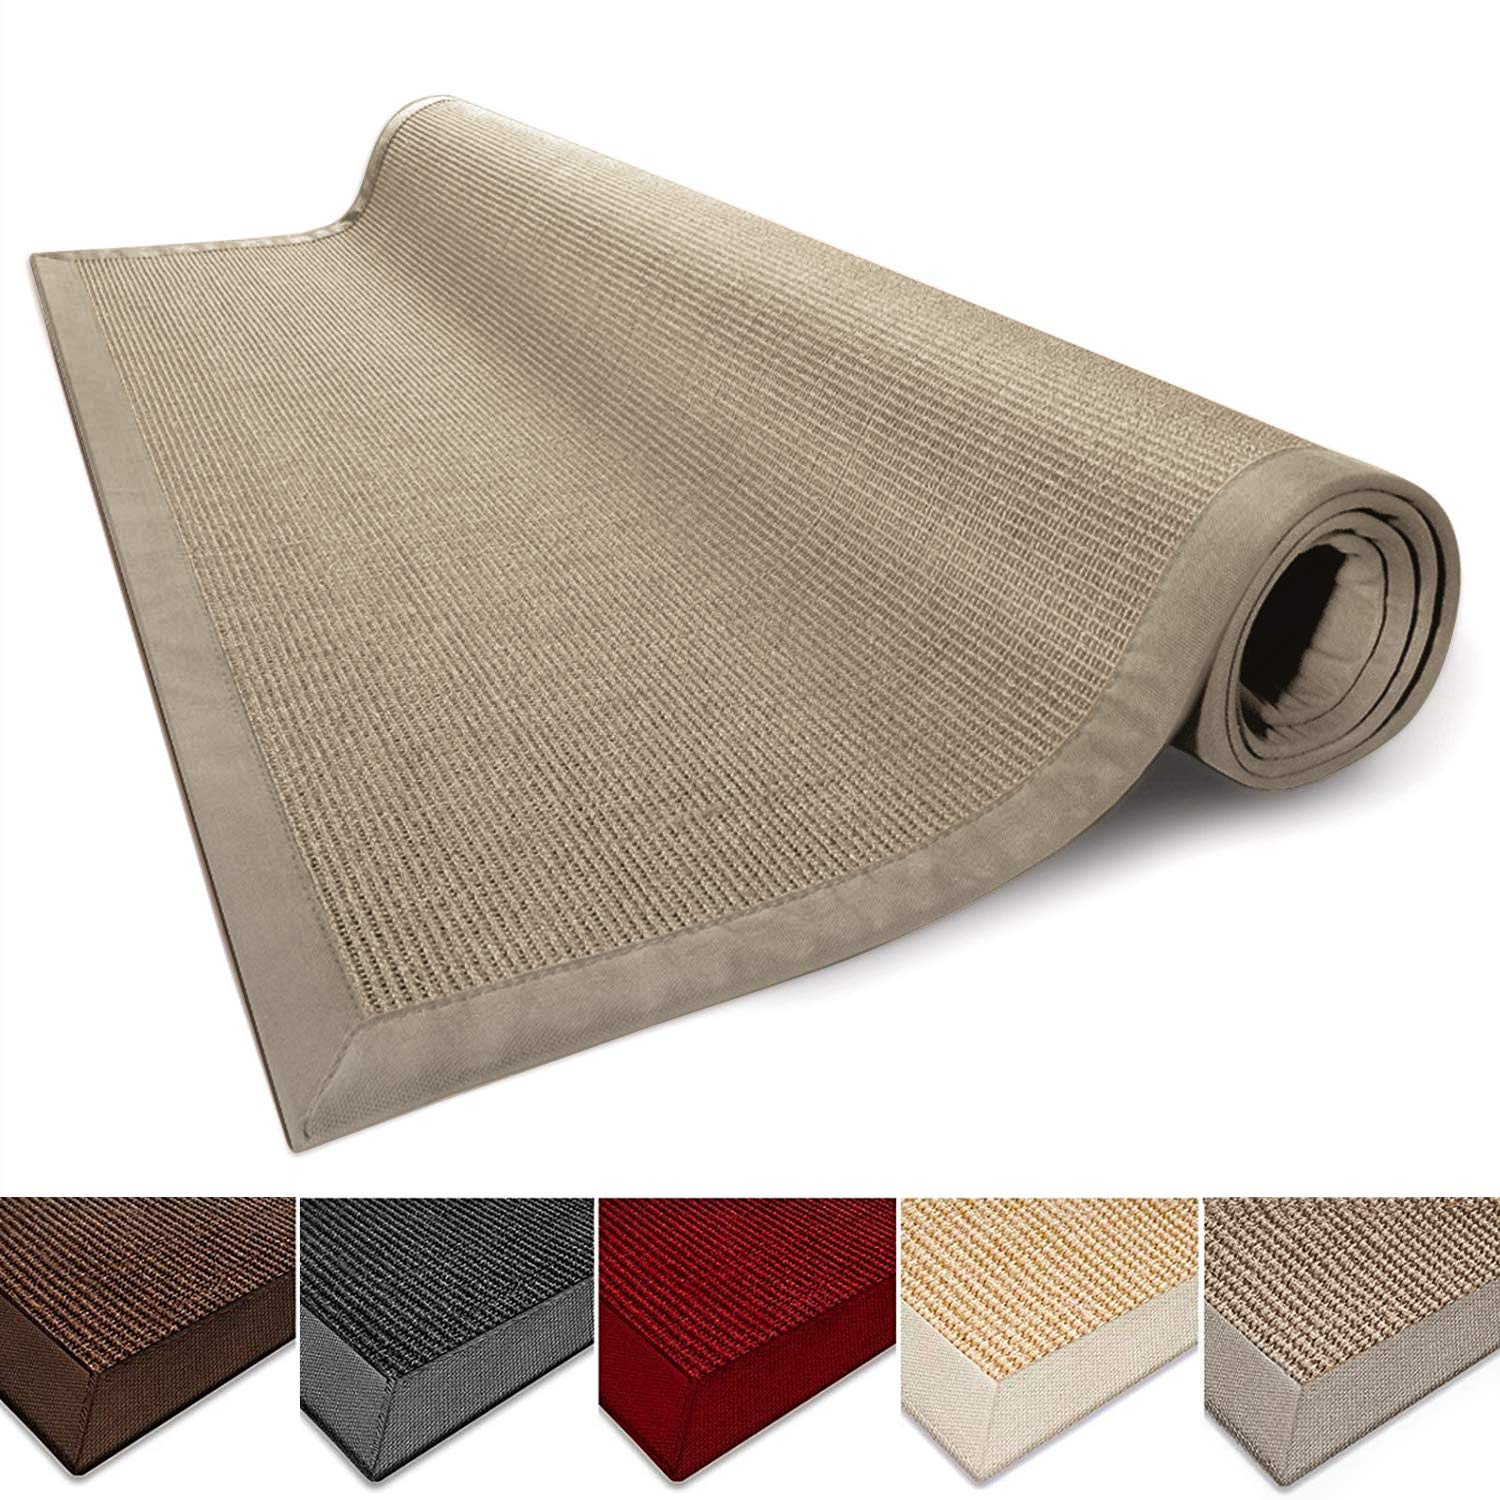 casa pura Sisal Rug Runner - 100% Natural Fiber Area Rug   Non-Skid Rustic Entryway Rug, Living Room Carpet or Kitchen Rugs and Sizes   Cork - 8' x 8'